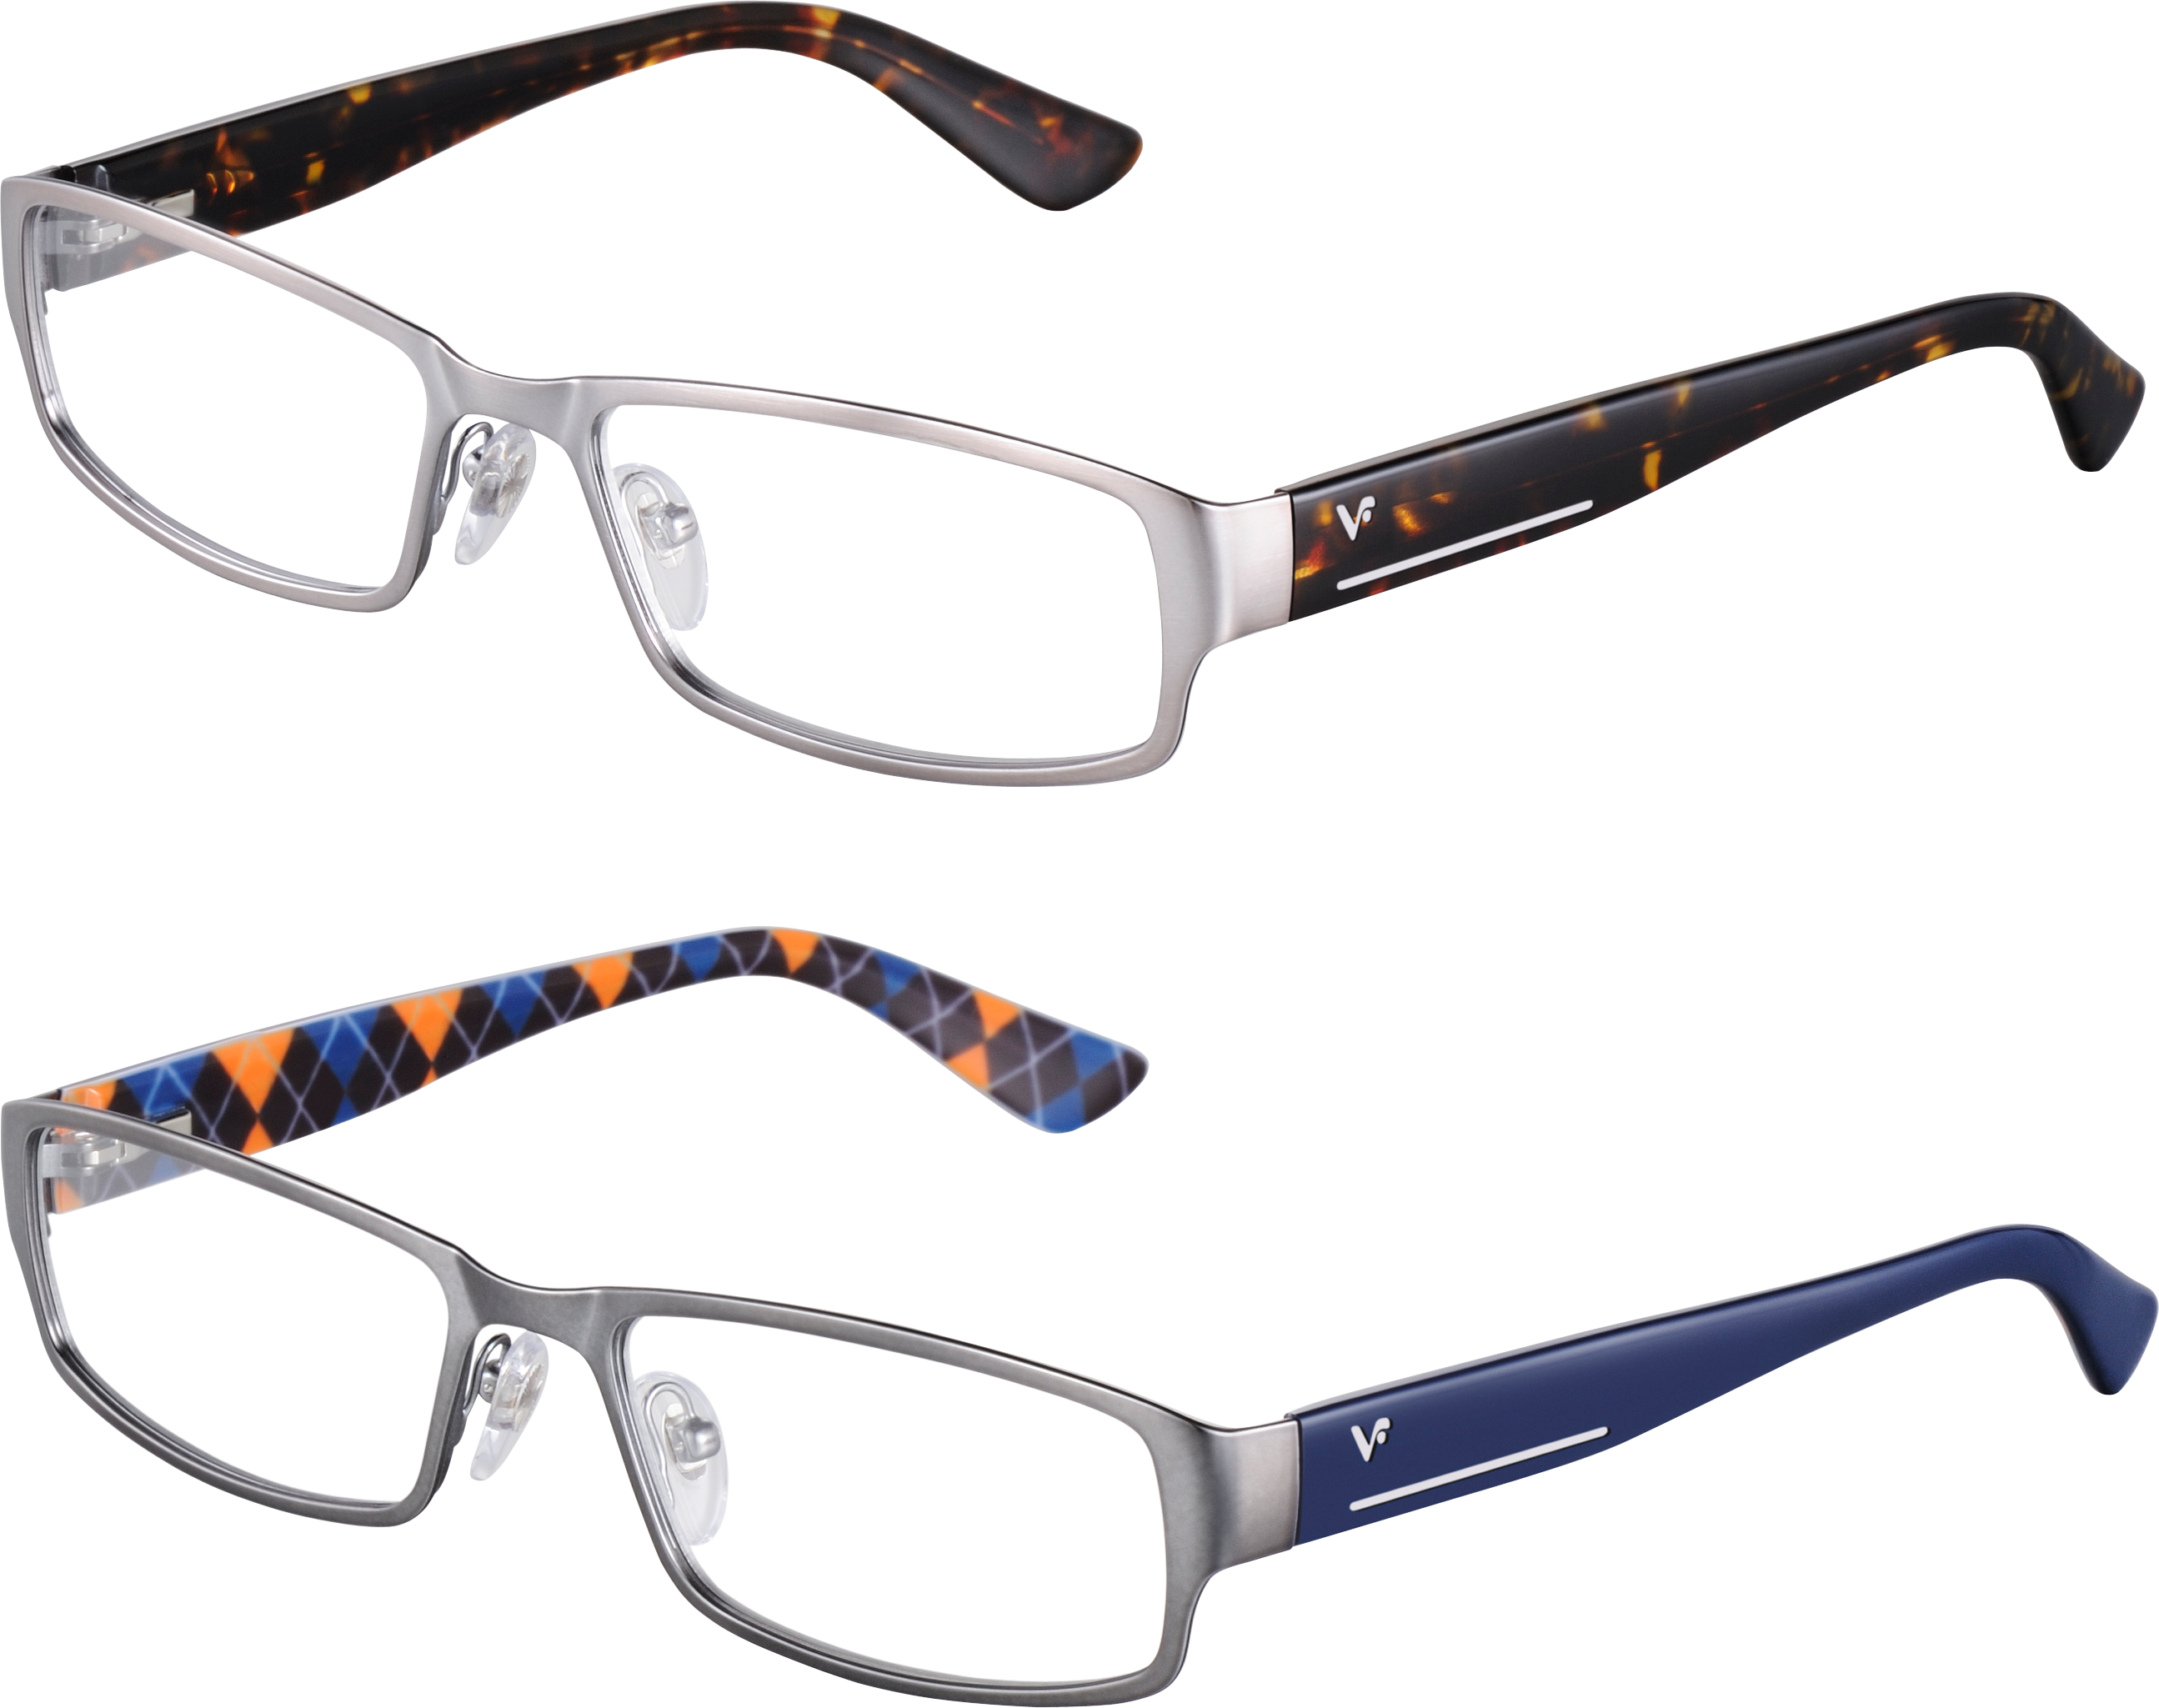 Vision clipart optical. Glasses sixty six isolated